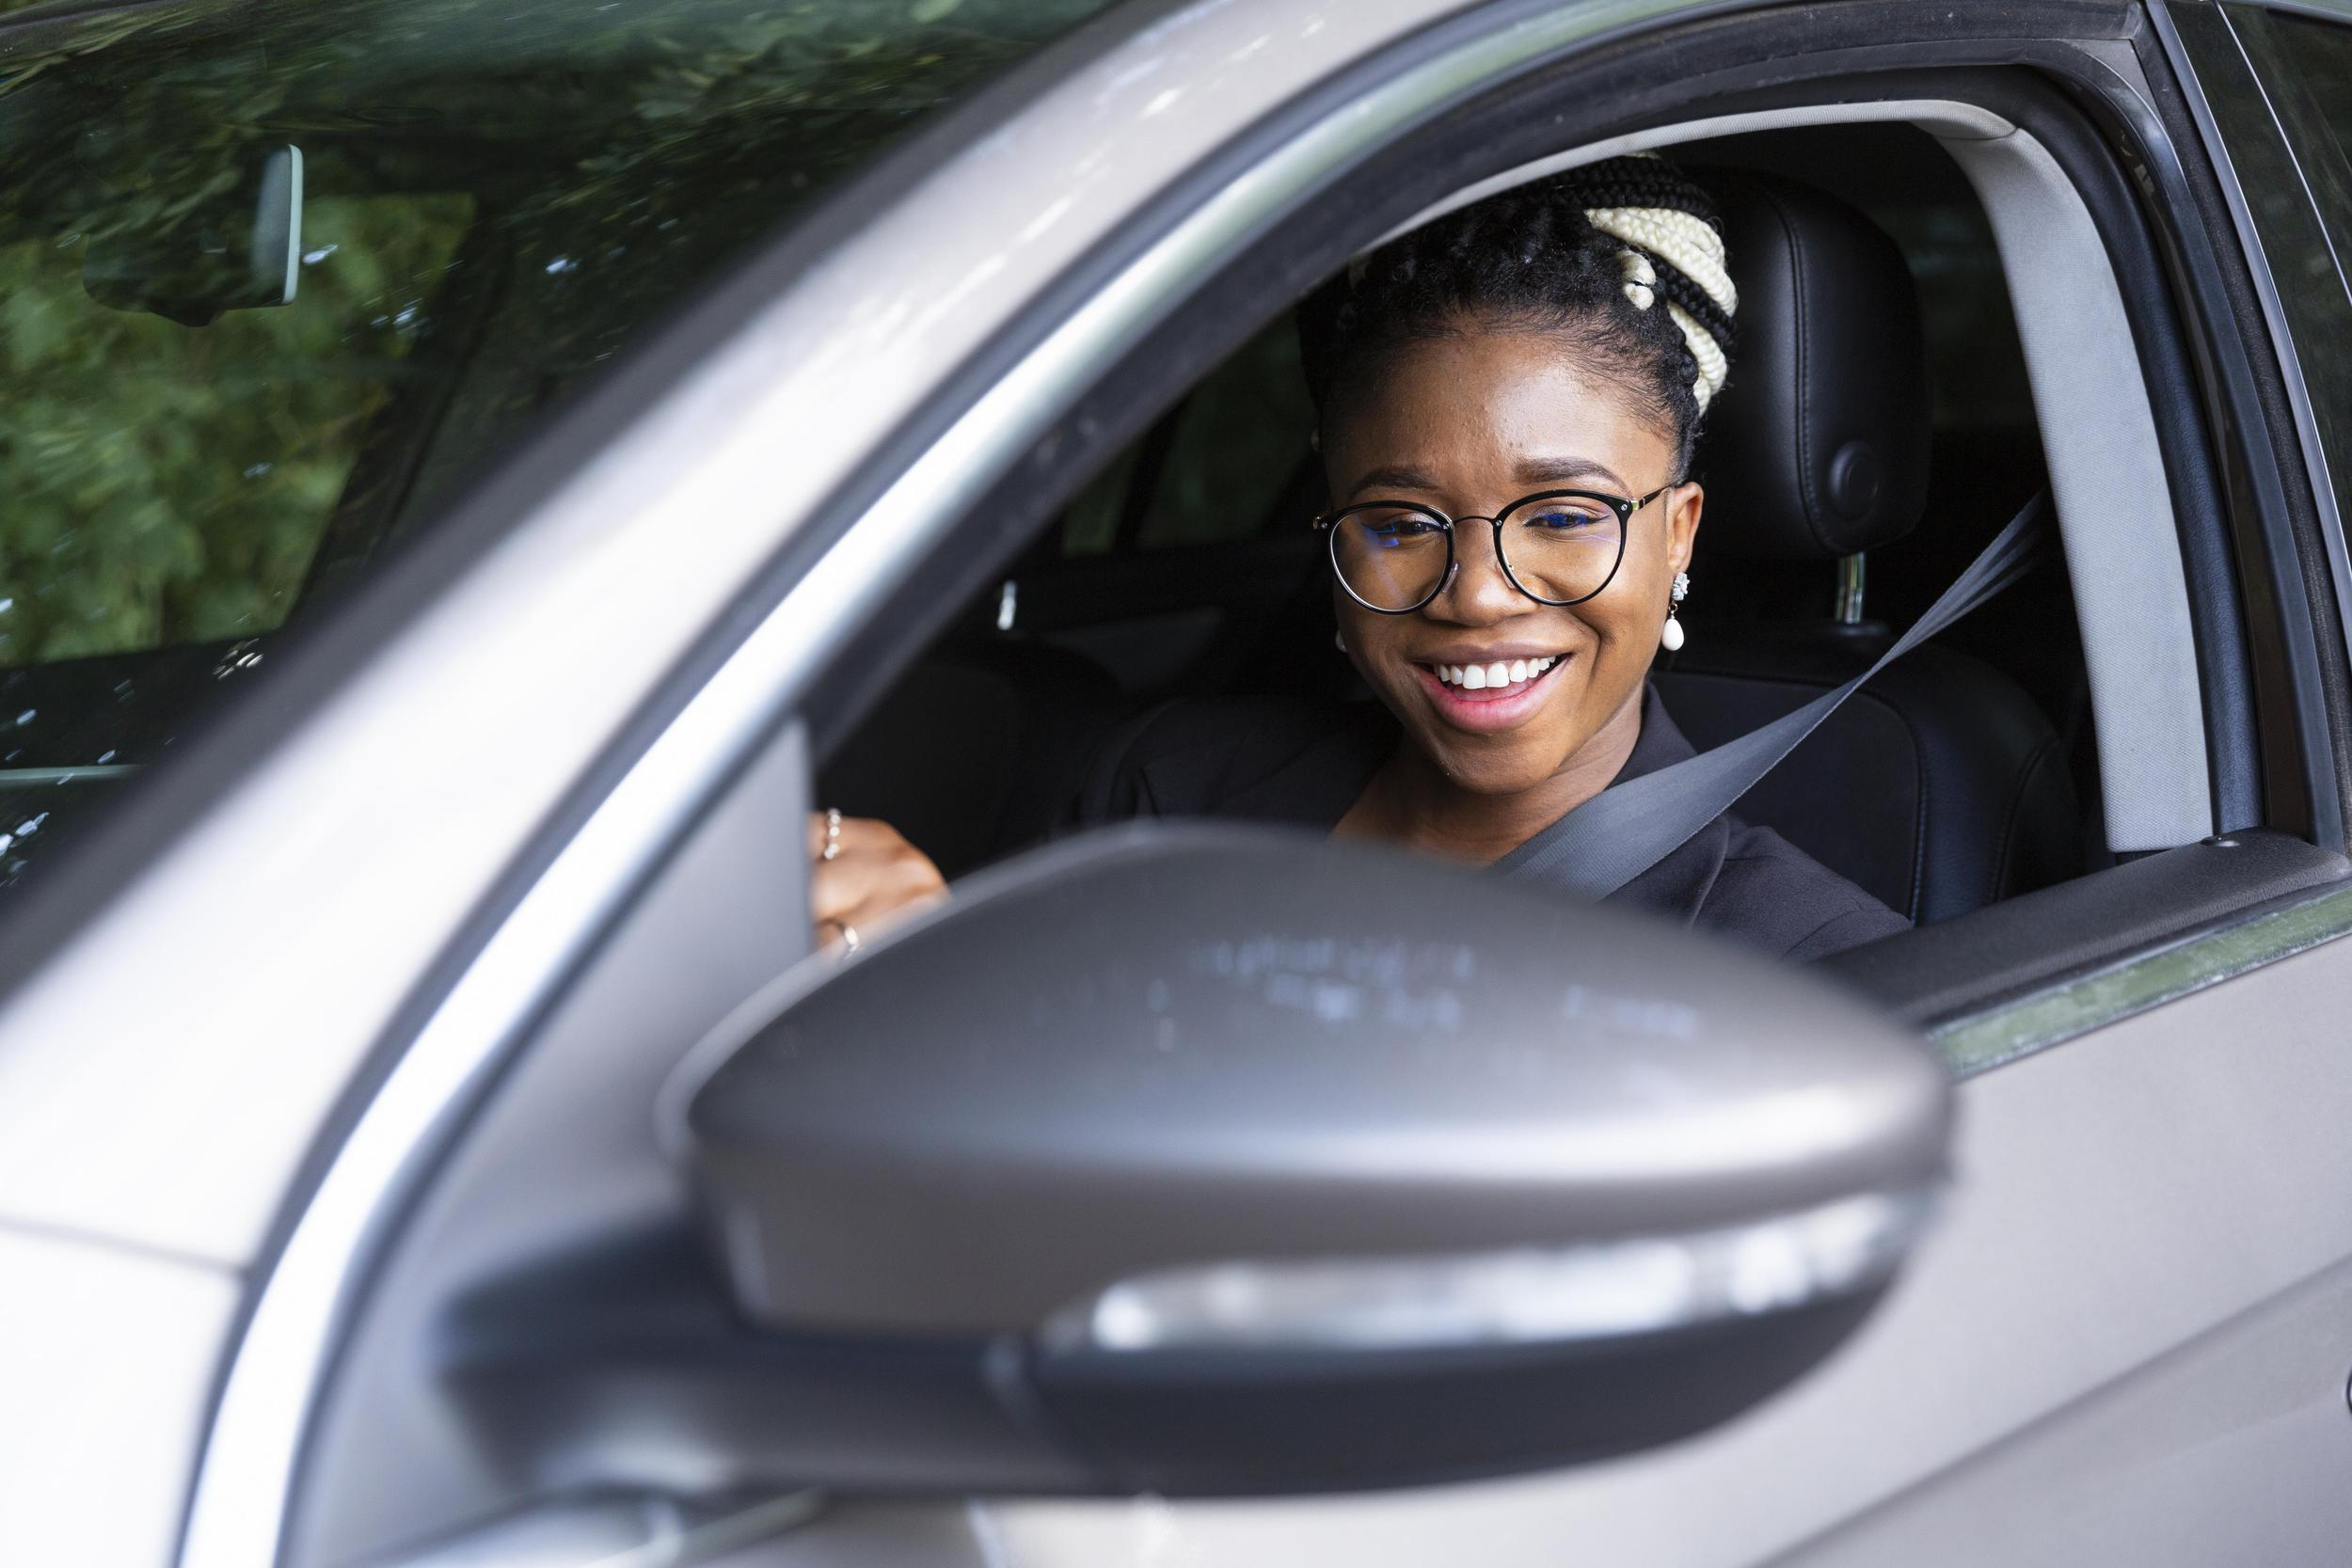 smiley-woman-driving-her-personal-car.jpg